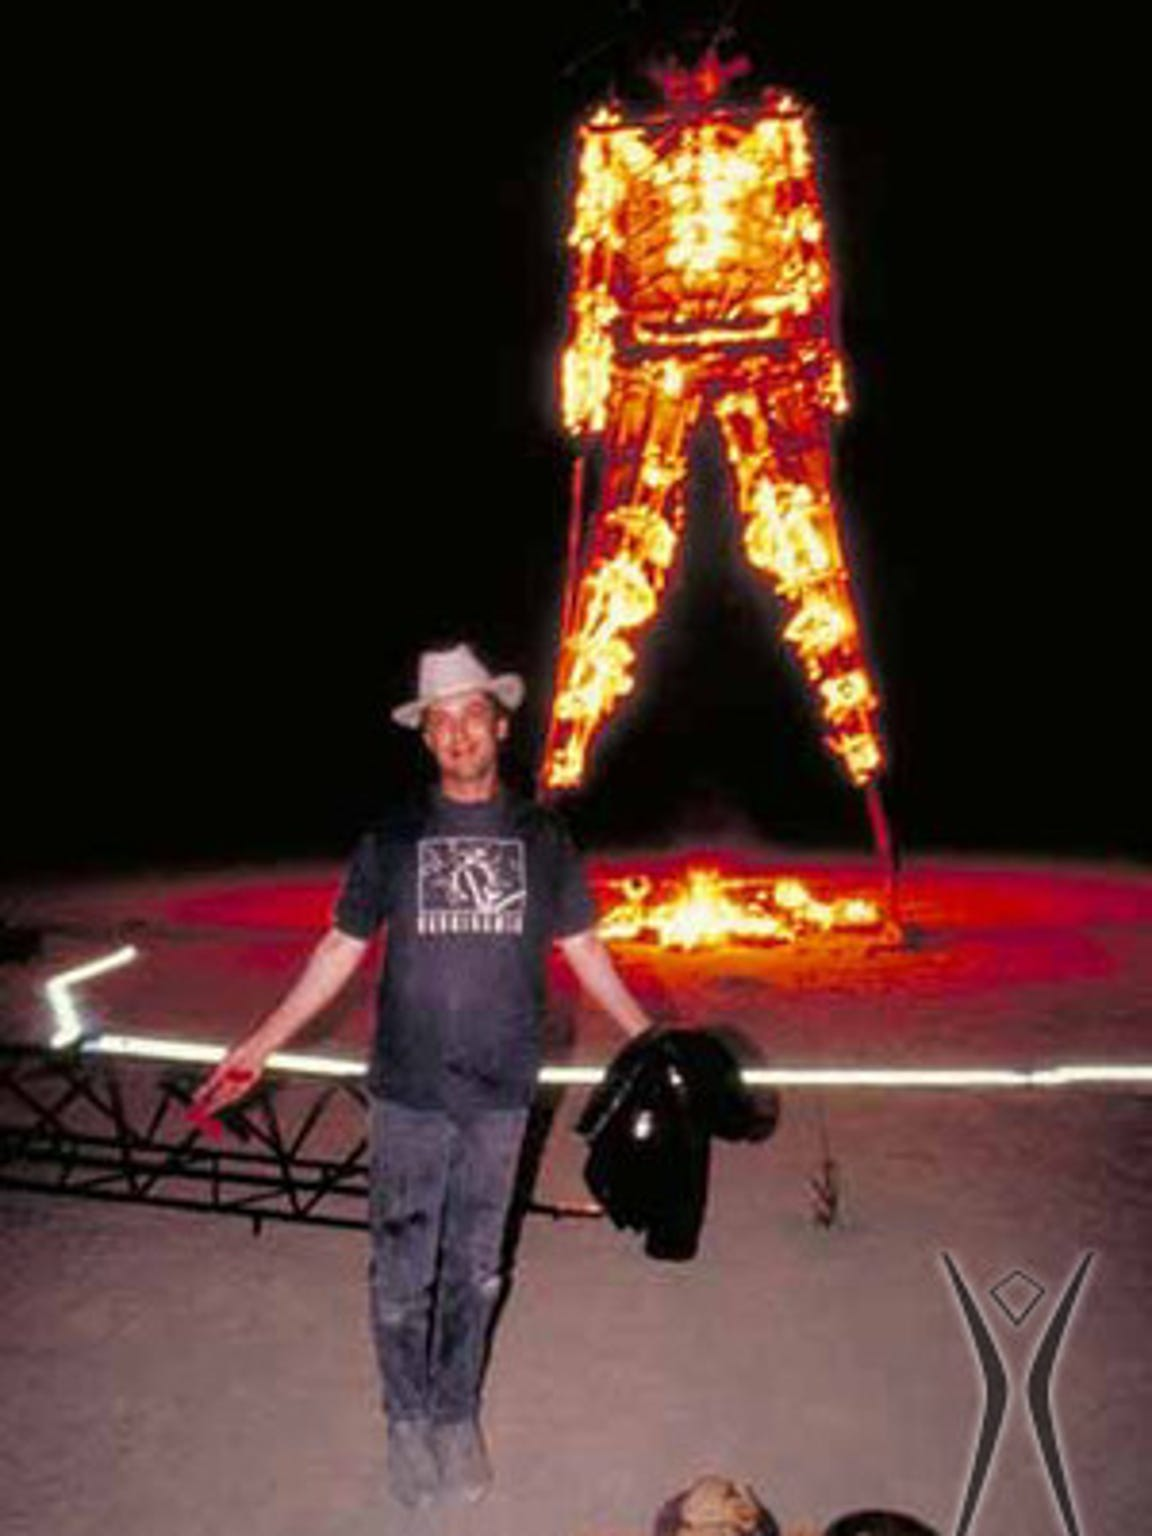 Burning Man founder Larry Harvey is pictured in 1990